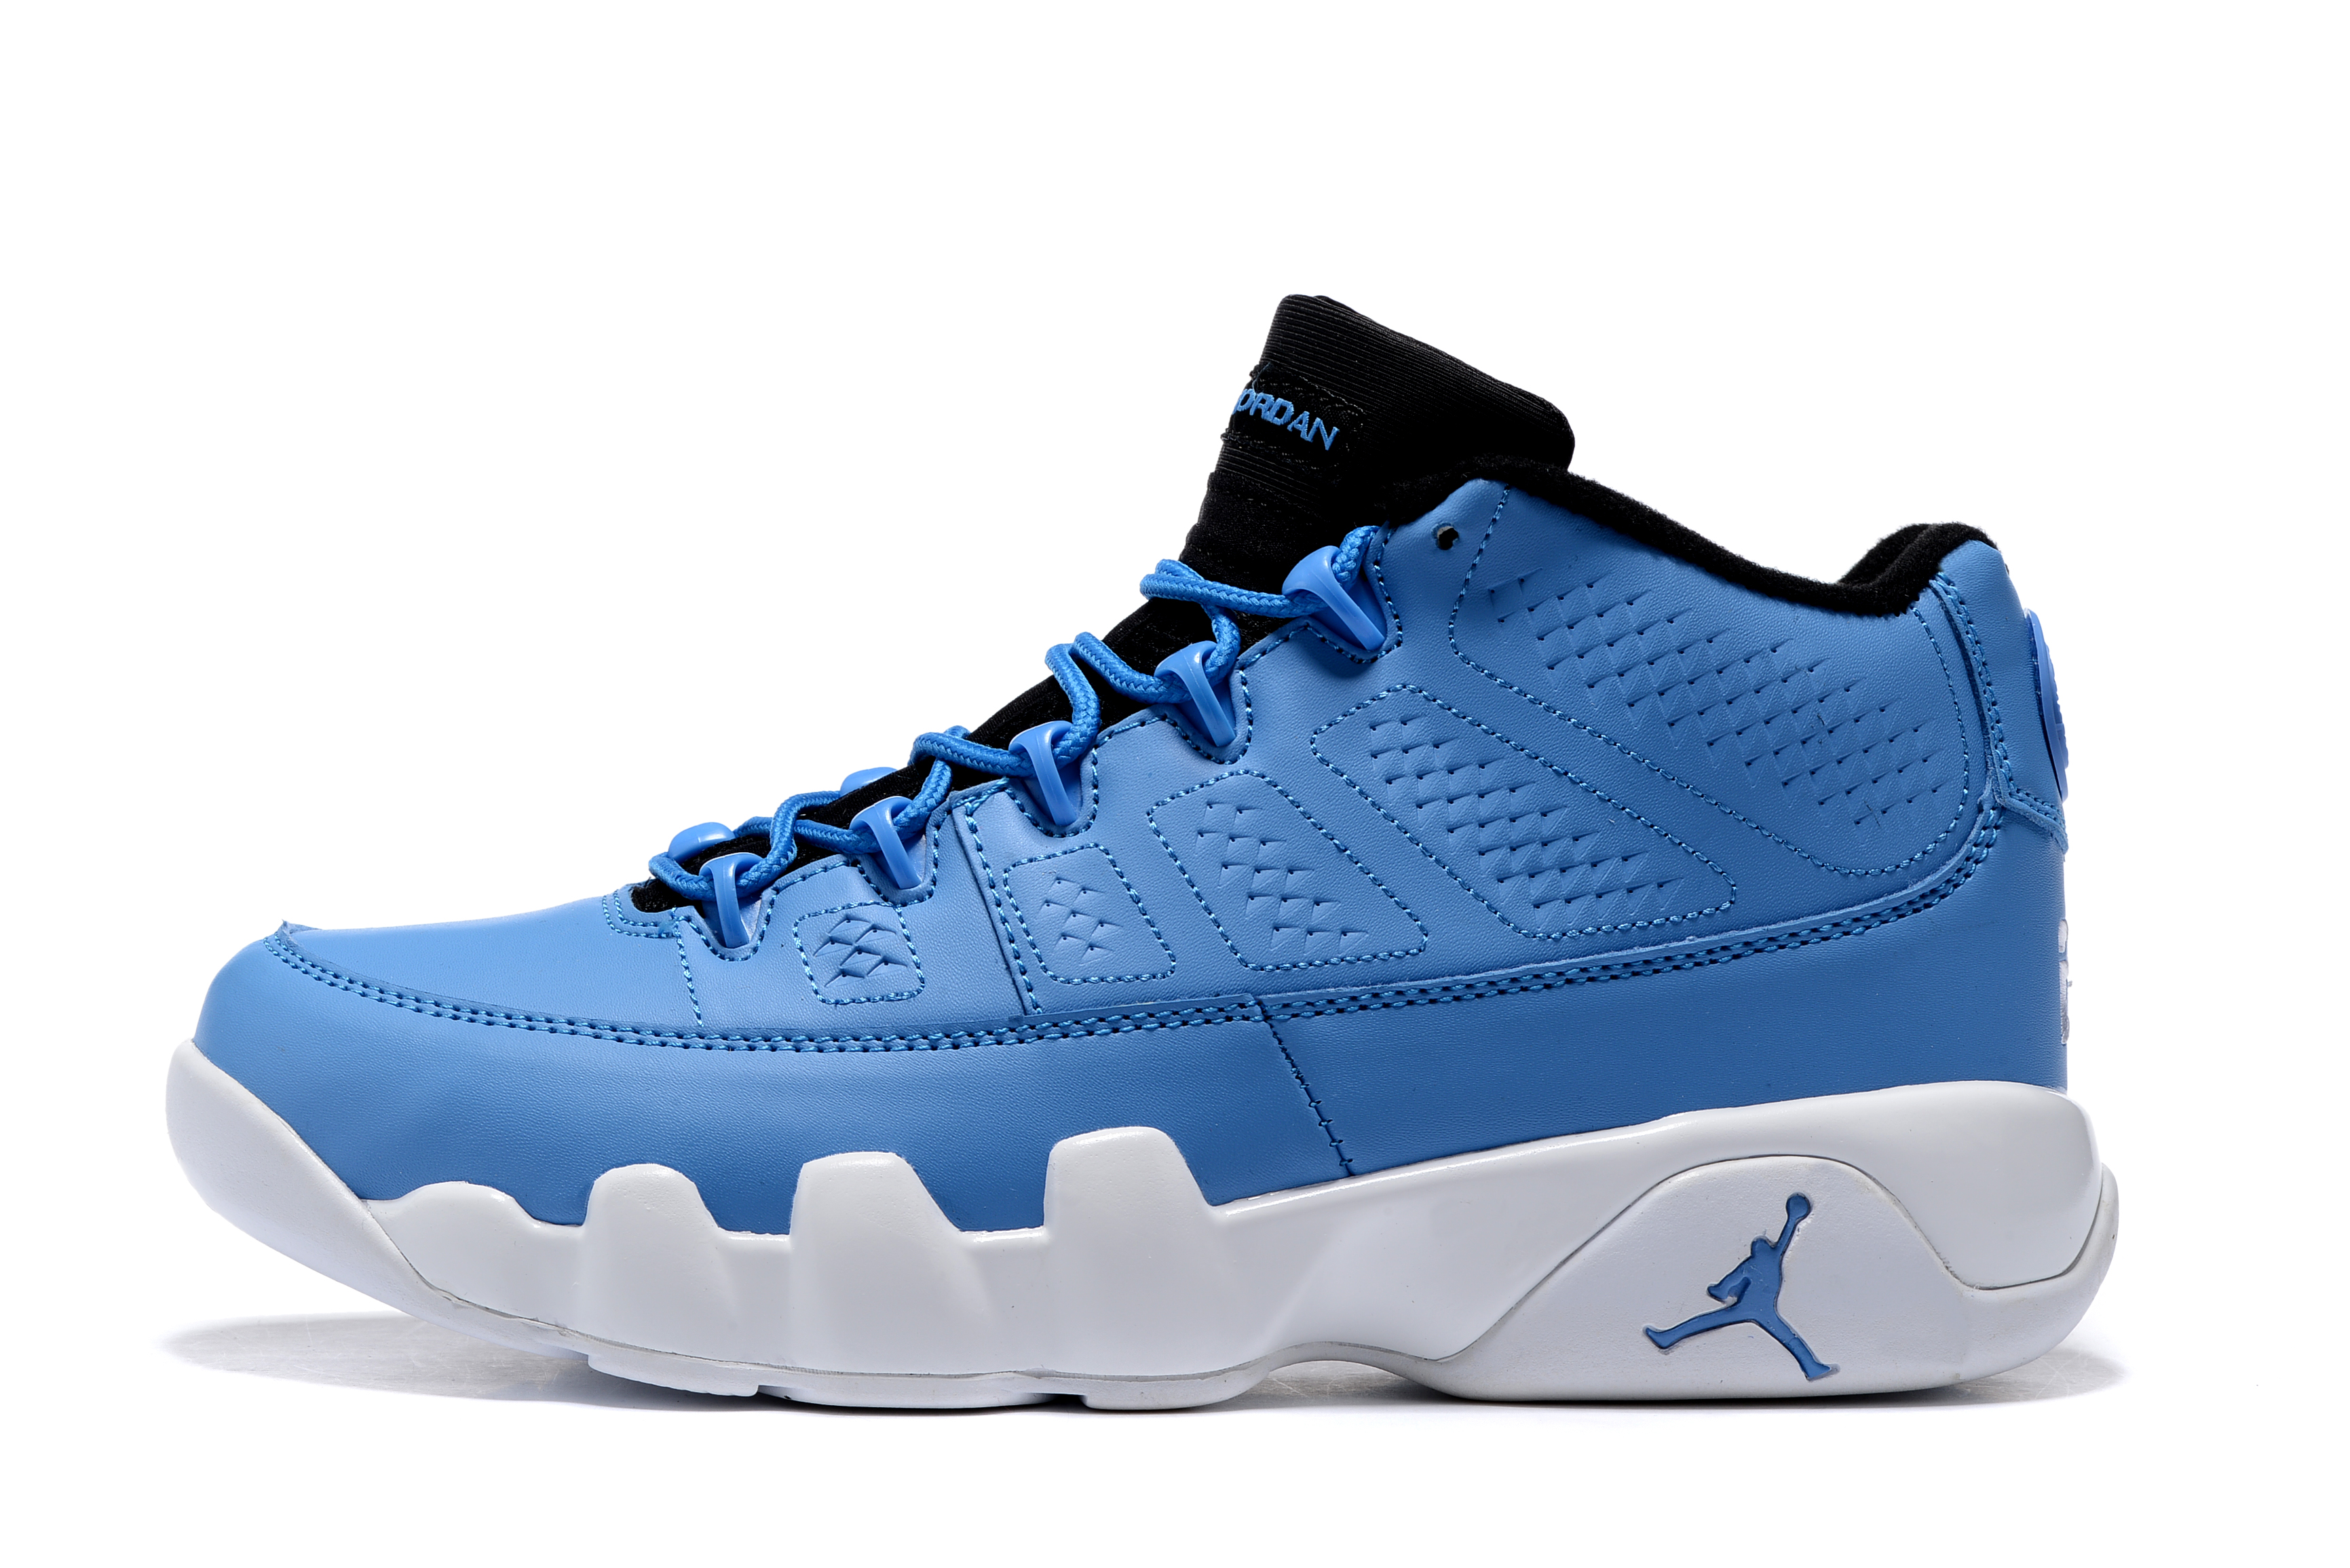 check out 46d76 a9902 Men s Air Jordan 9 Retro Low